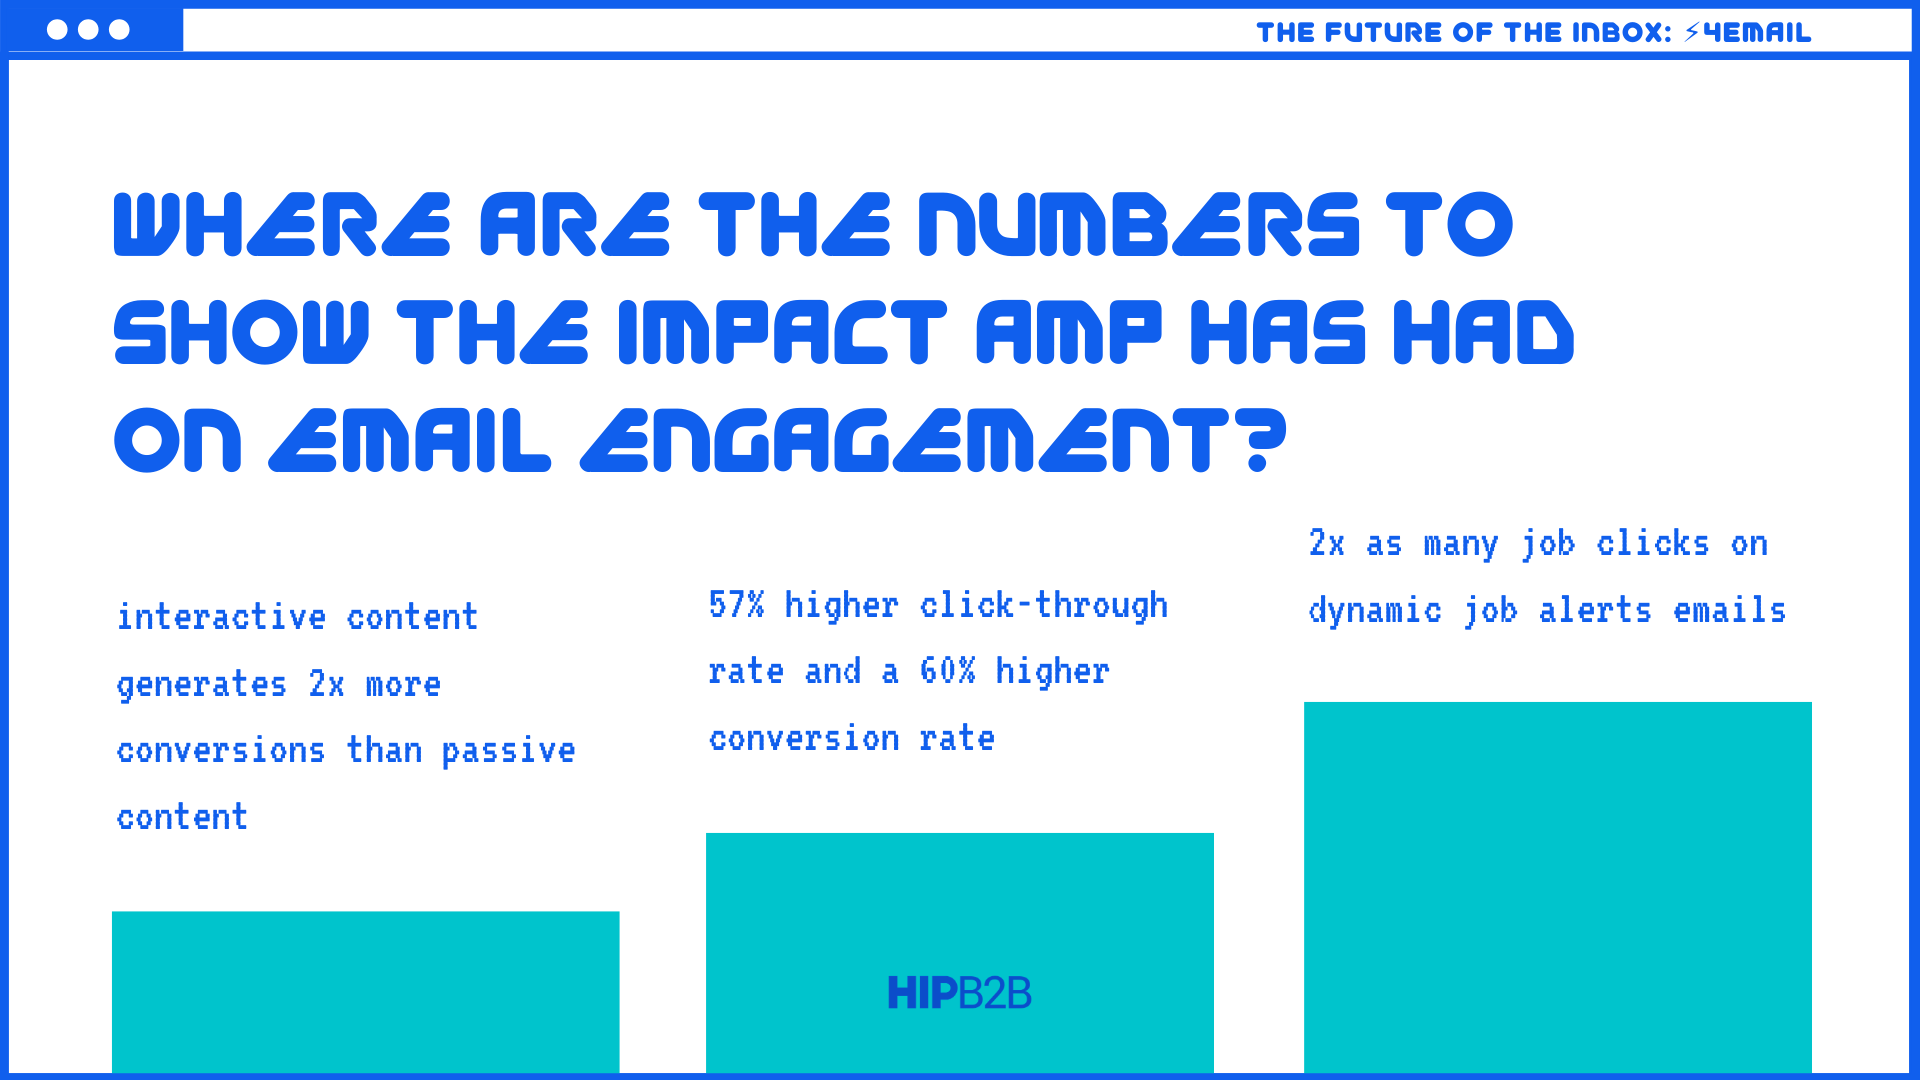 Where Are the Numbers to Show the Impact AMP Has Had On Email Engagement?